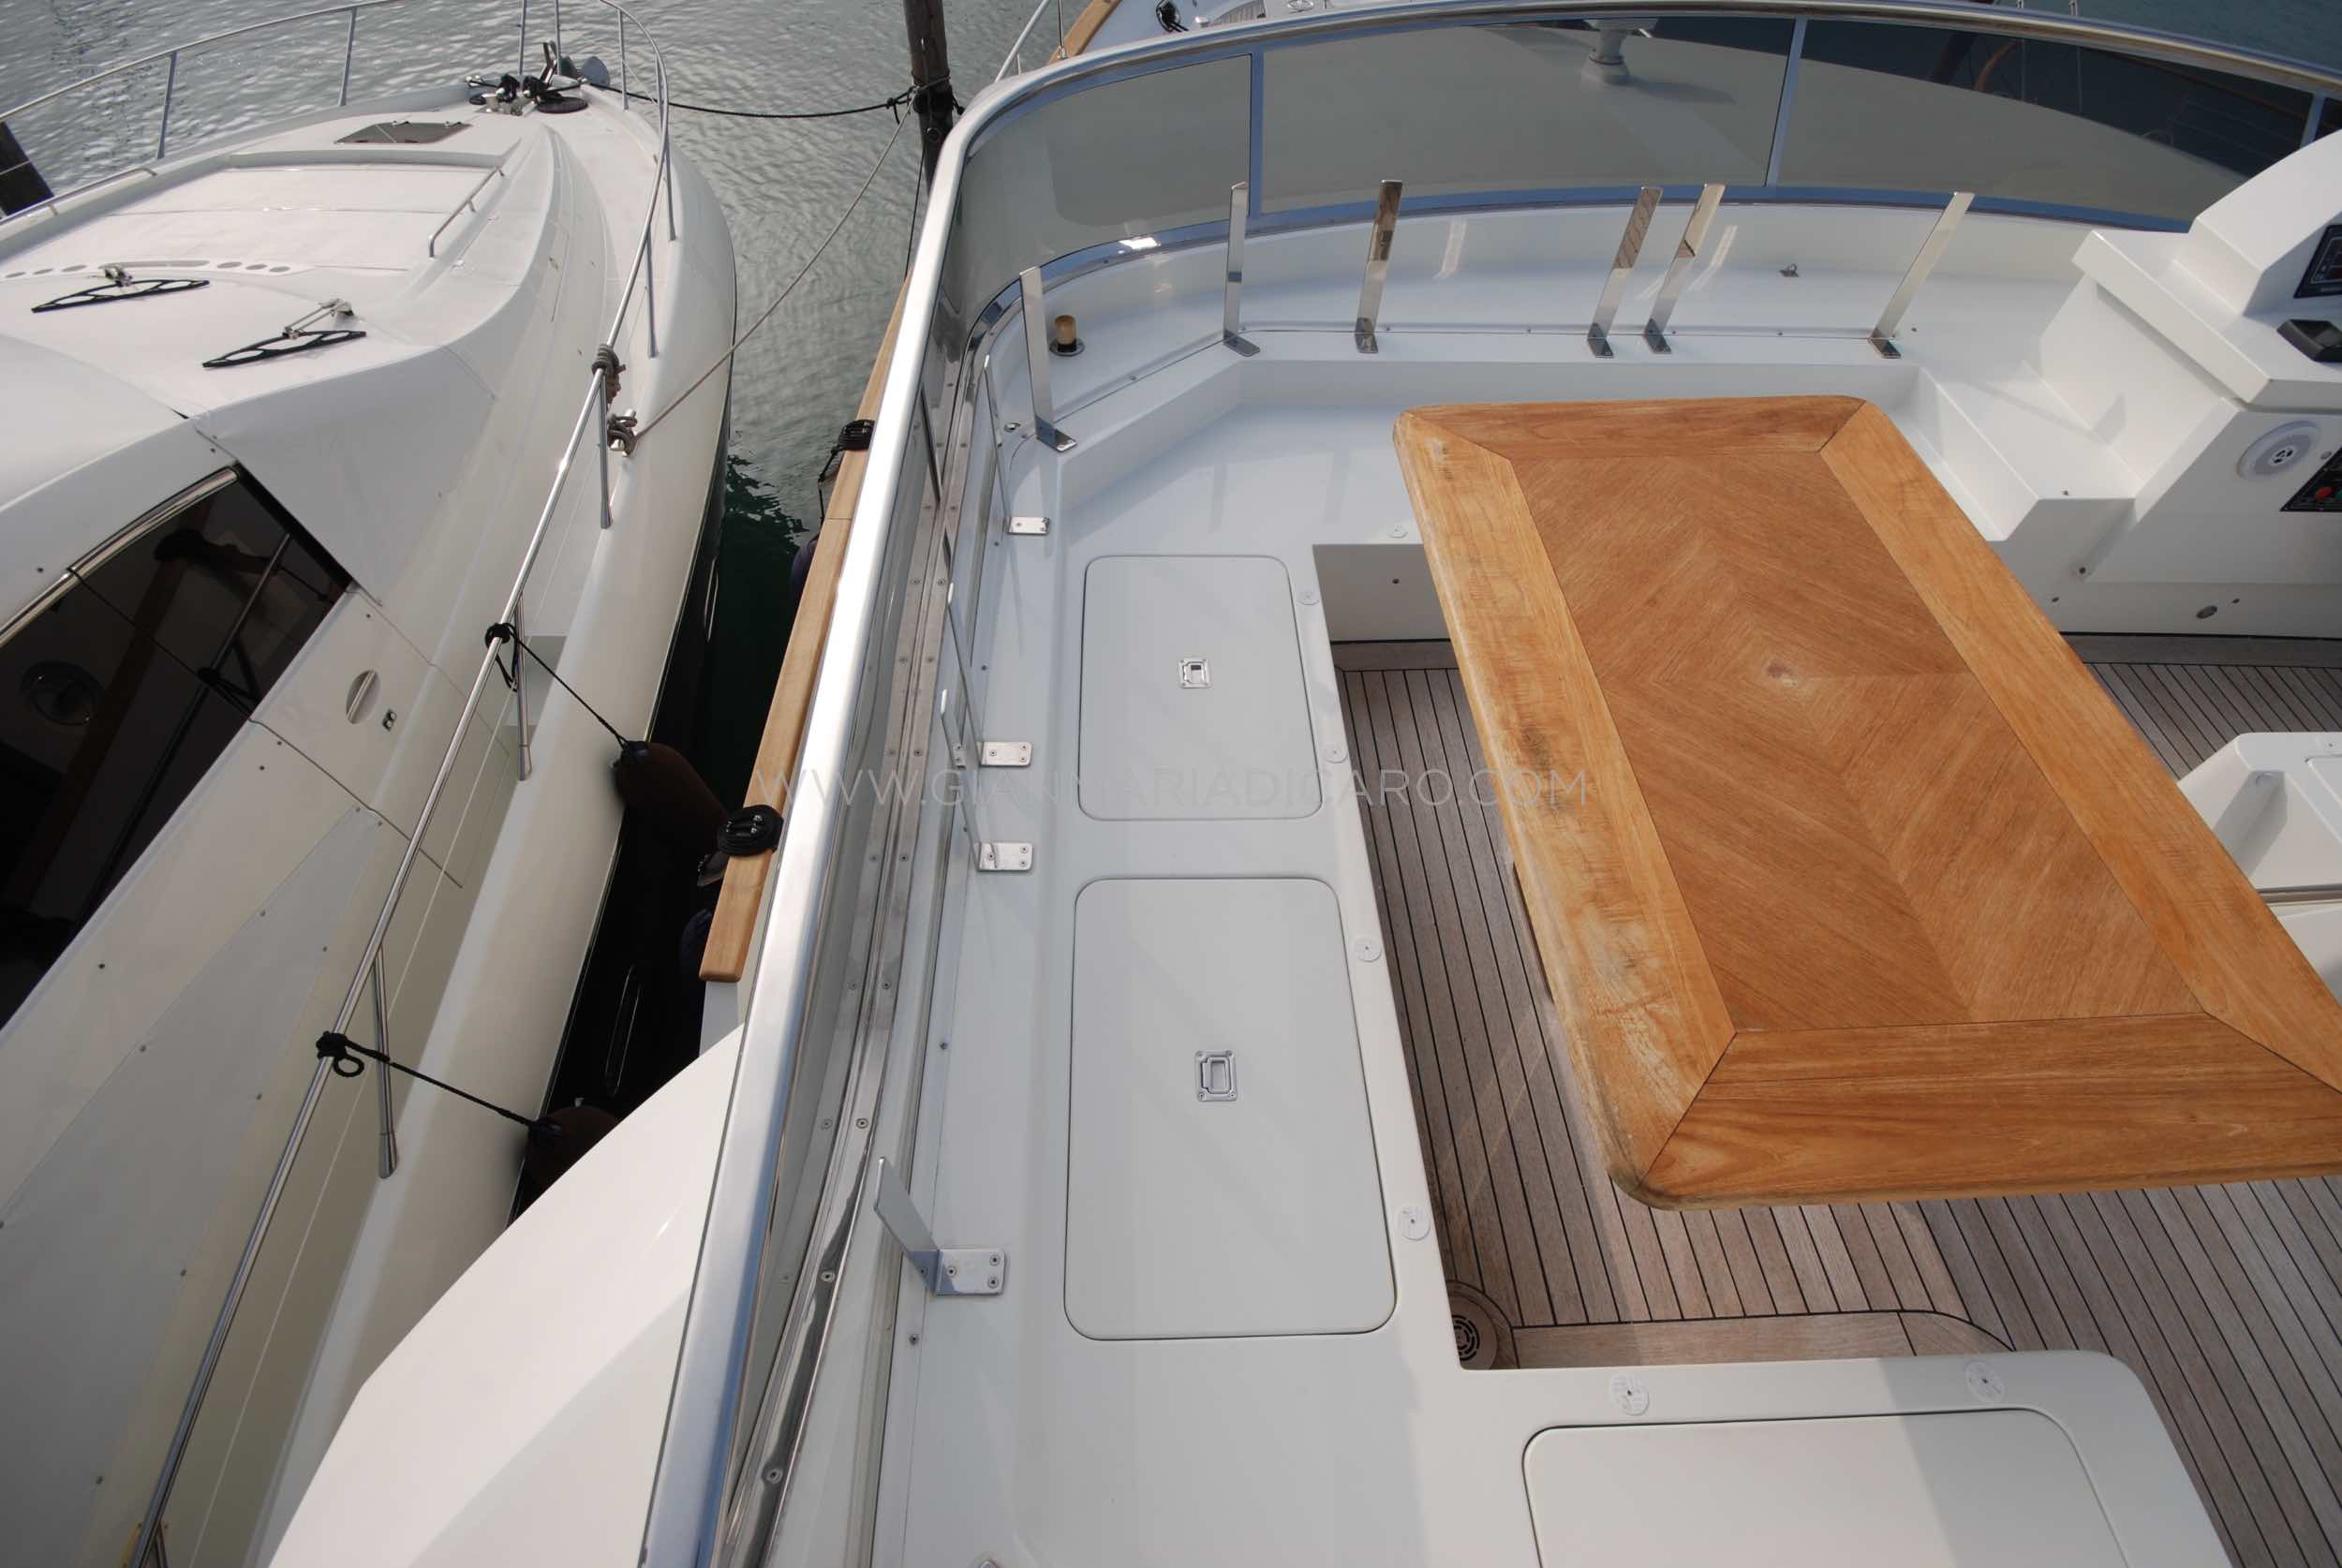 emys-yacht-22-unica-for-sale-102.jpg